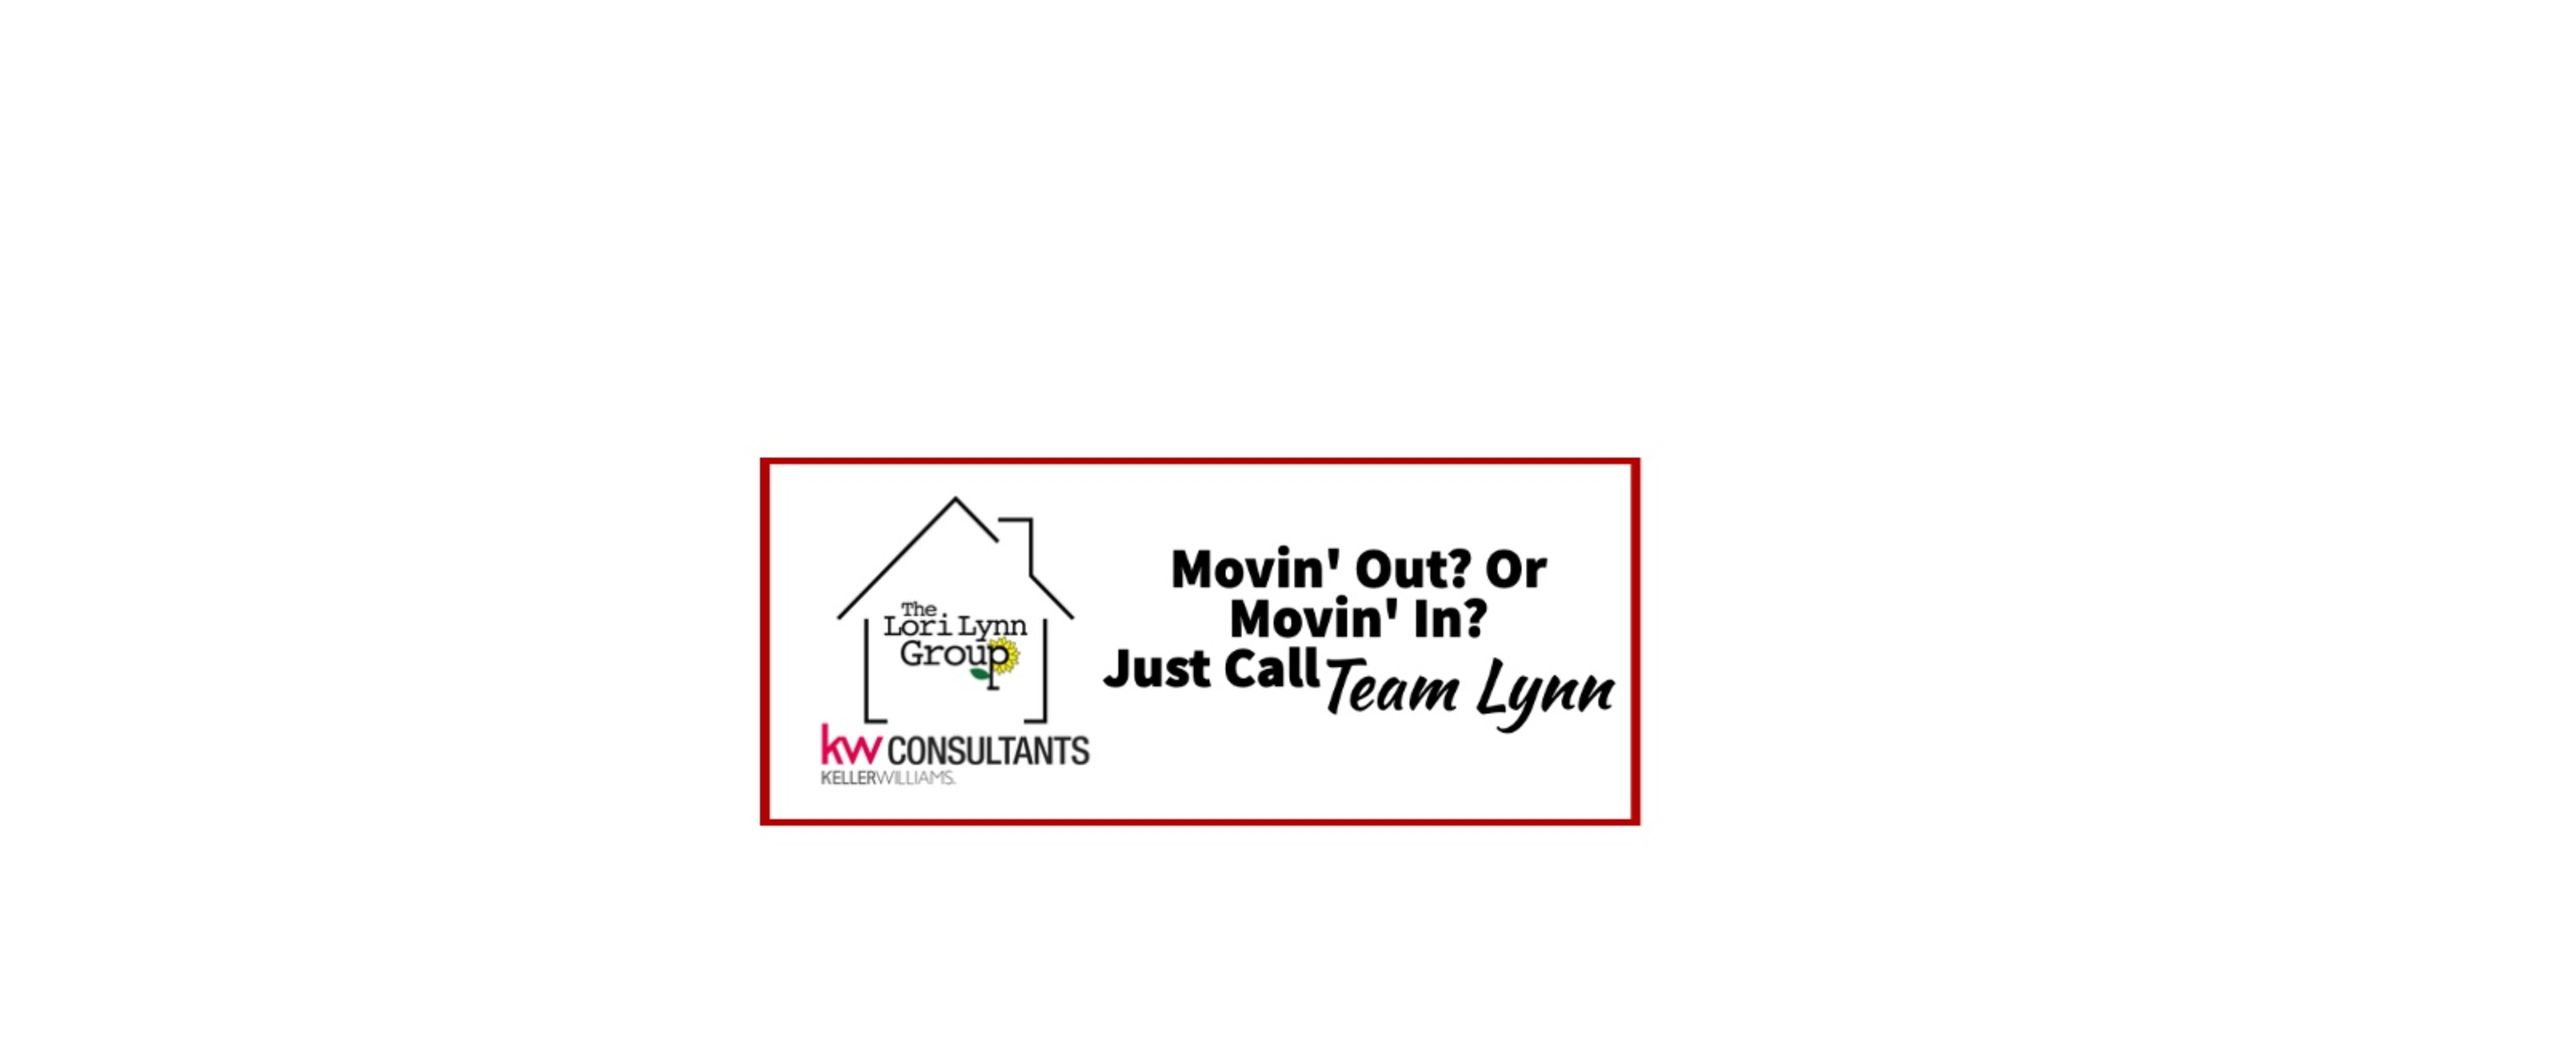 The Lori Lynn Group with KW Consultants - Movin' Out, Movin' in, just call Team Lynn